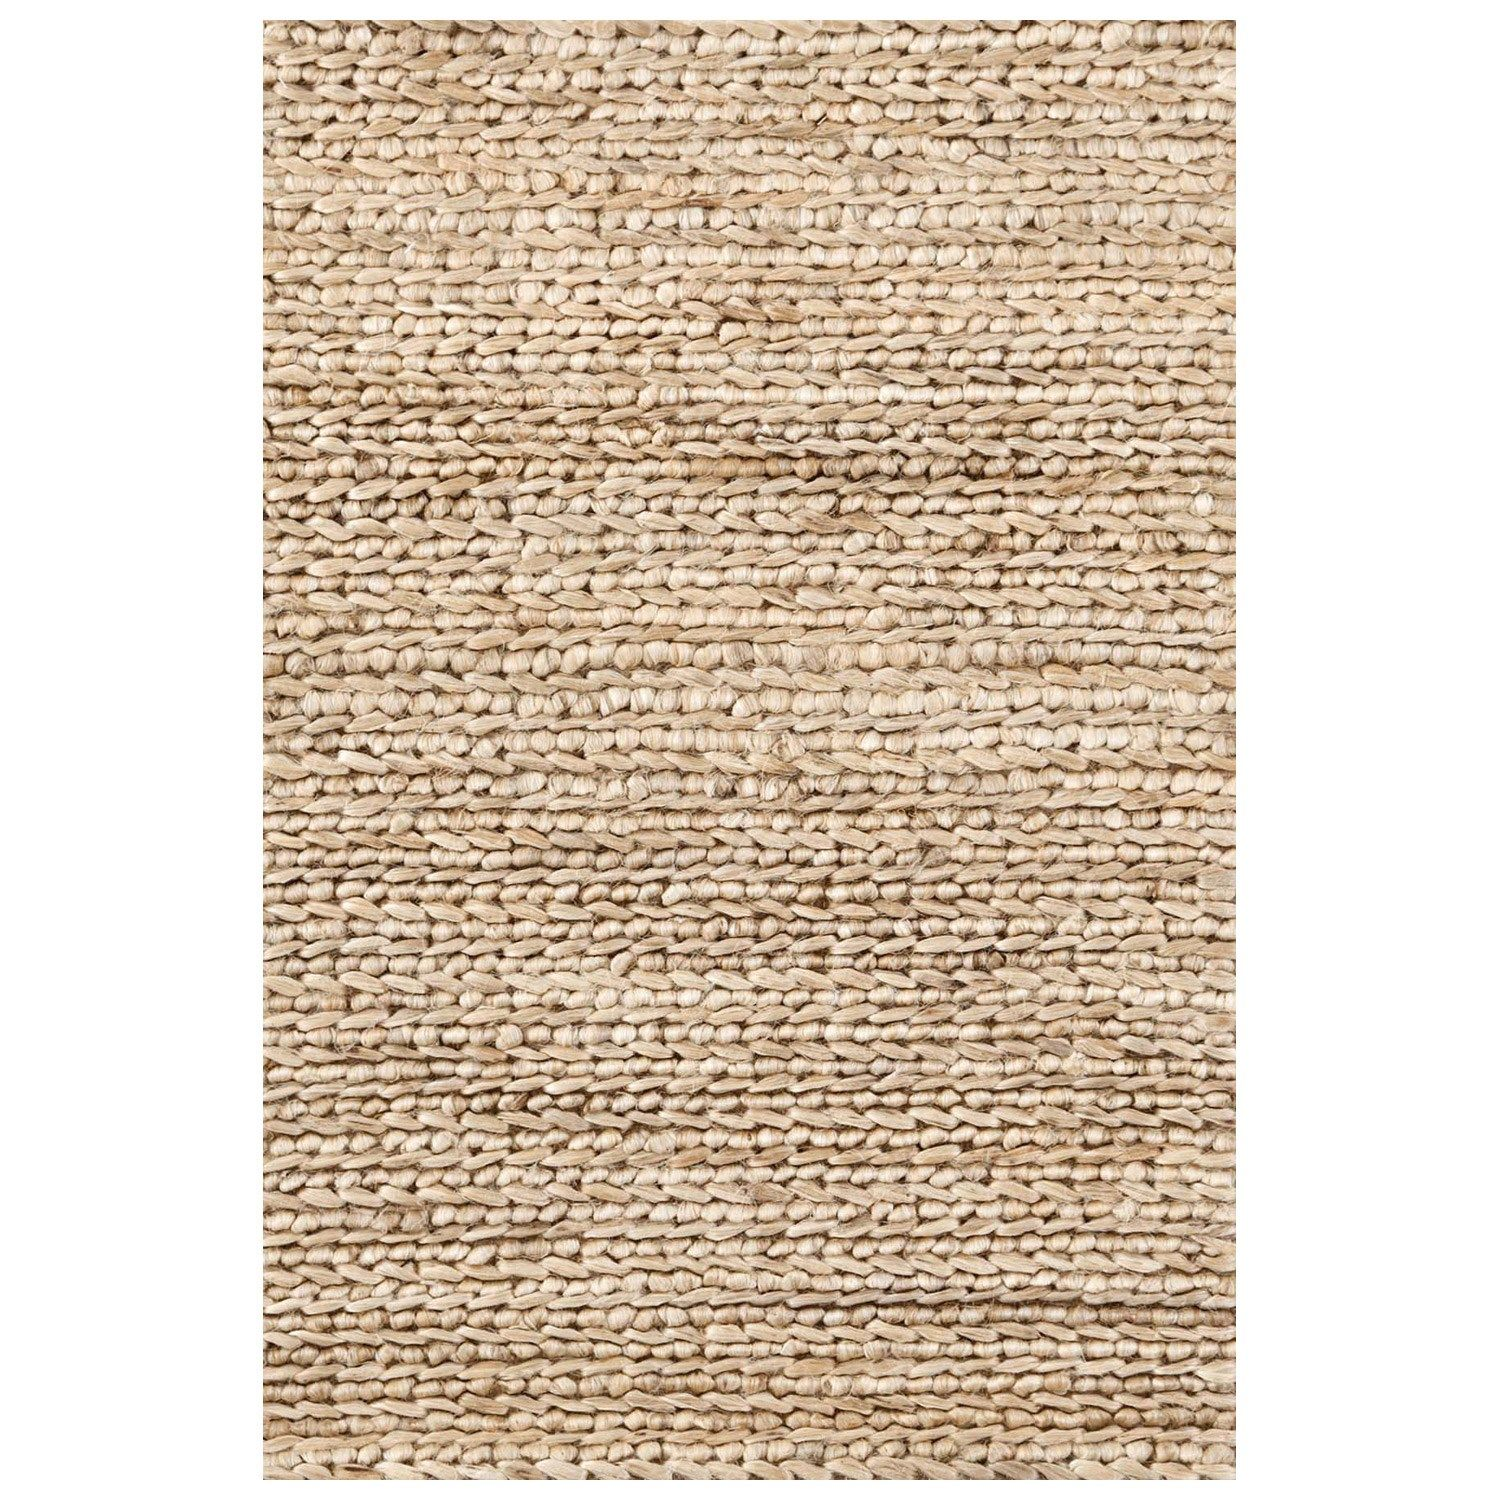 Salon Jute Dash And Albert Natural Jute Woven Rug Salon Woven Rug